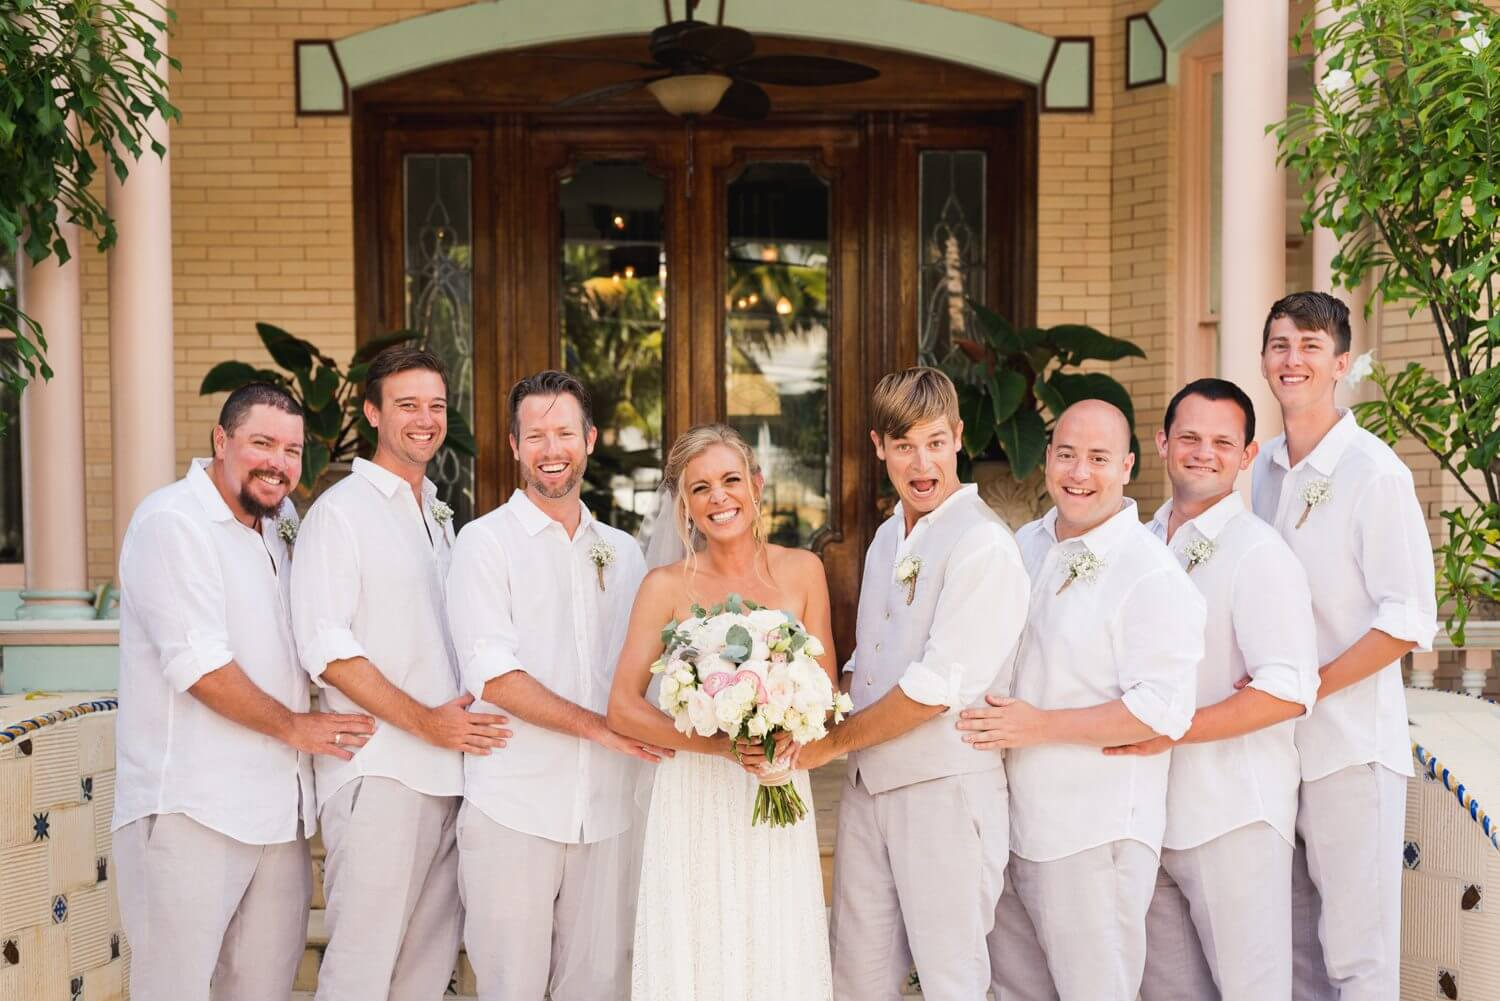 Freas Photography Southernmost House Wedding 73 - Boho Styled Key West Wedding at the Southernmost House in Key West, Florida